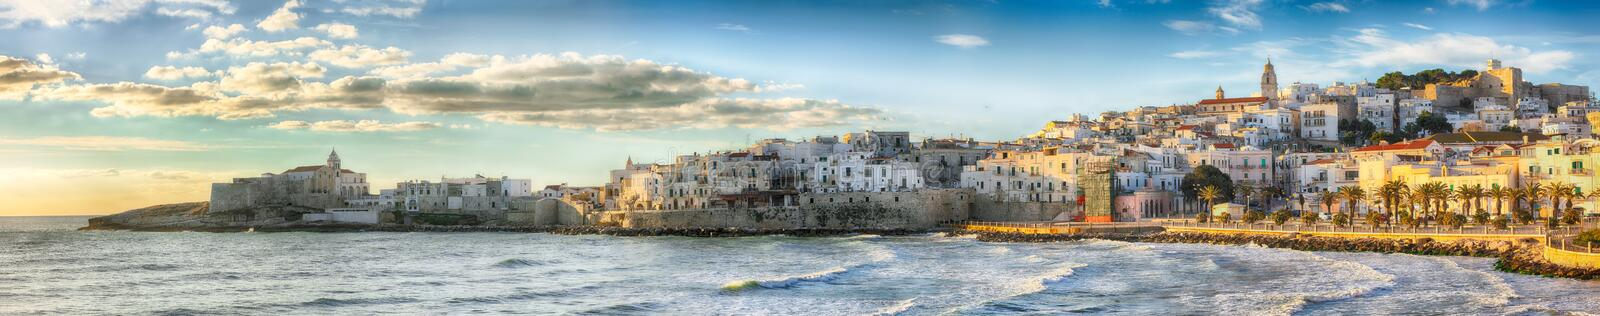 Historic central city of the beautiful town called Vieste royalty free stock photos